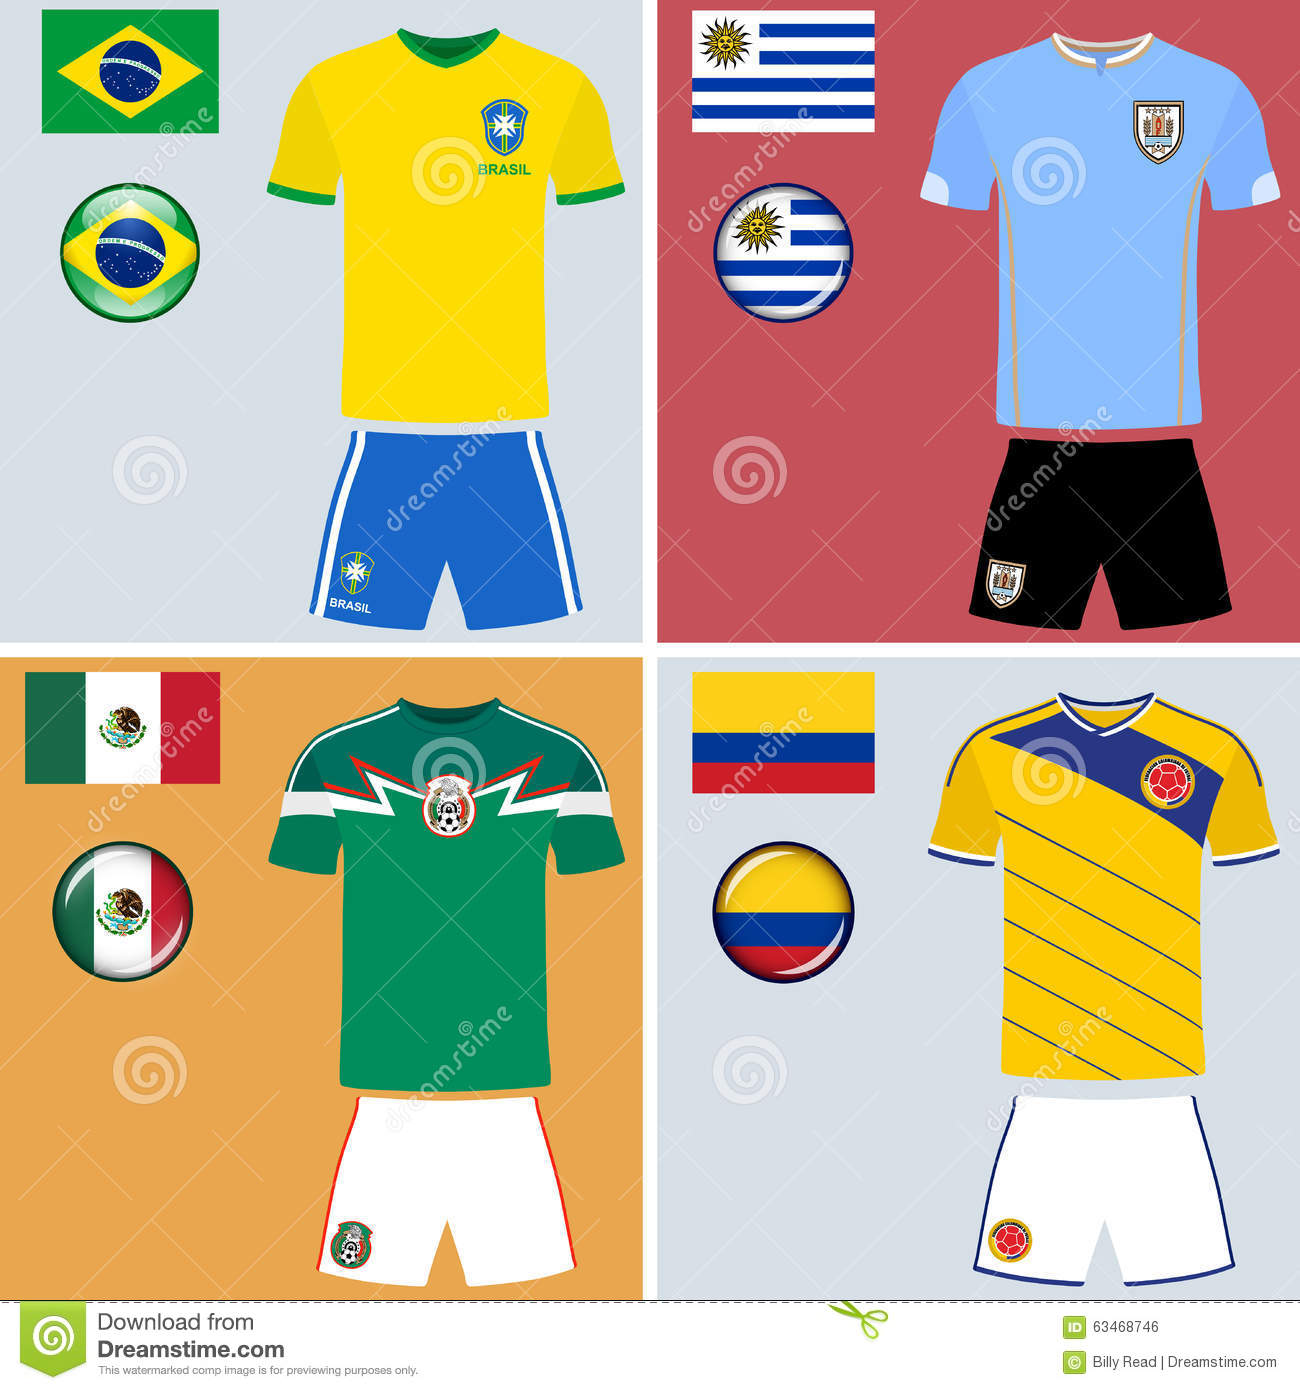 cde538a8da4 Set of vector graphic images representing the national football jerseys of  Brazil, Uruguay, Mexico and Colombia.